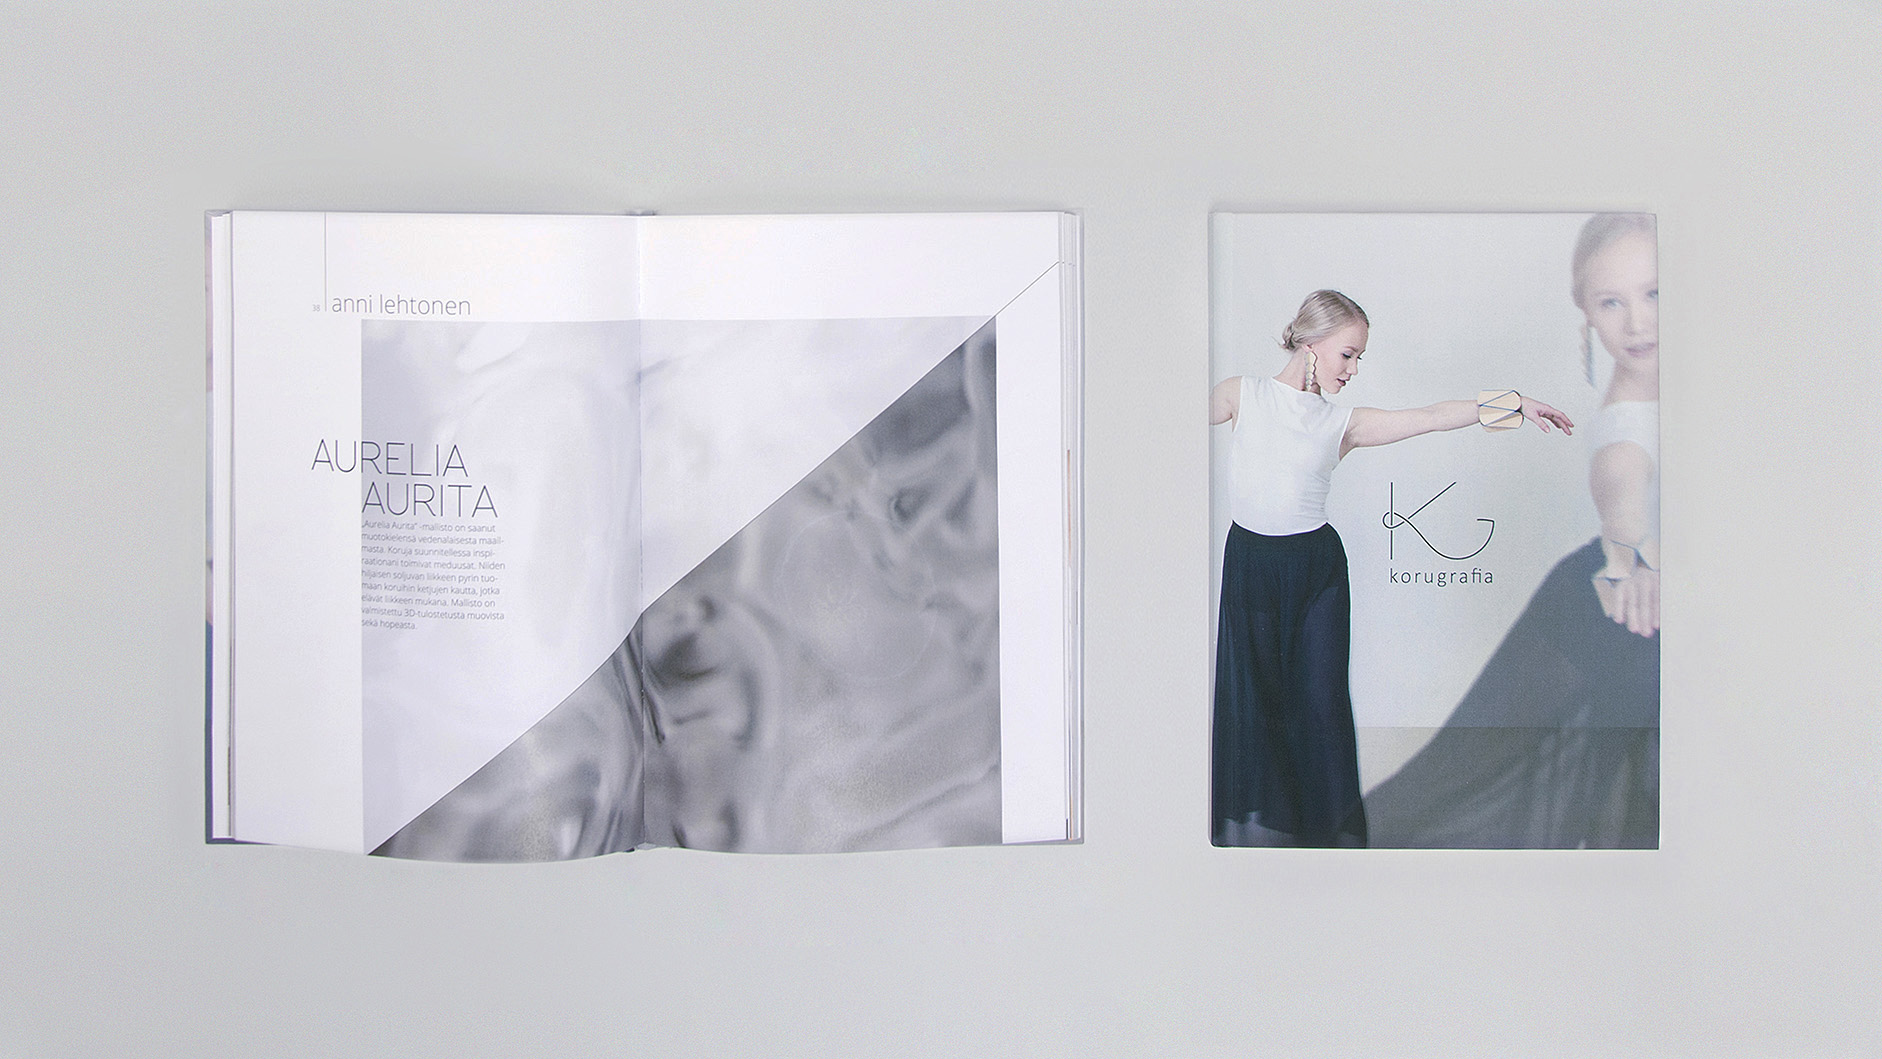 korugrafia_book_2016_publiction_koivisto_studio